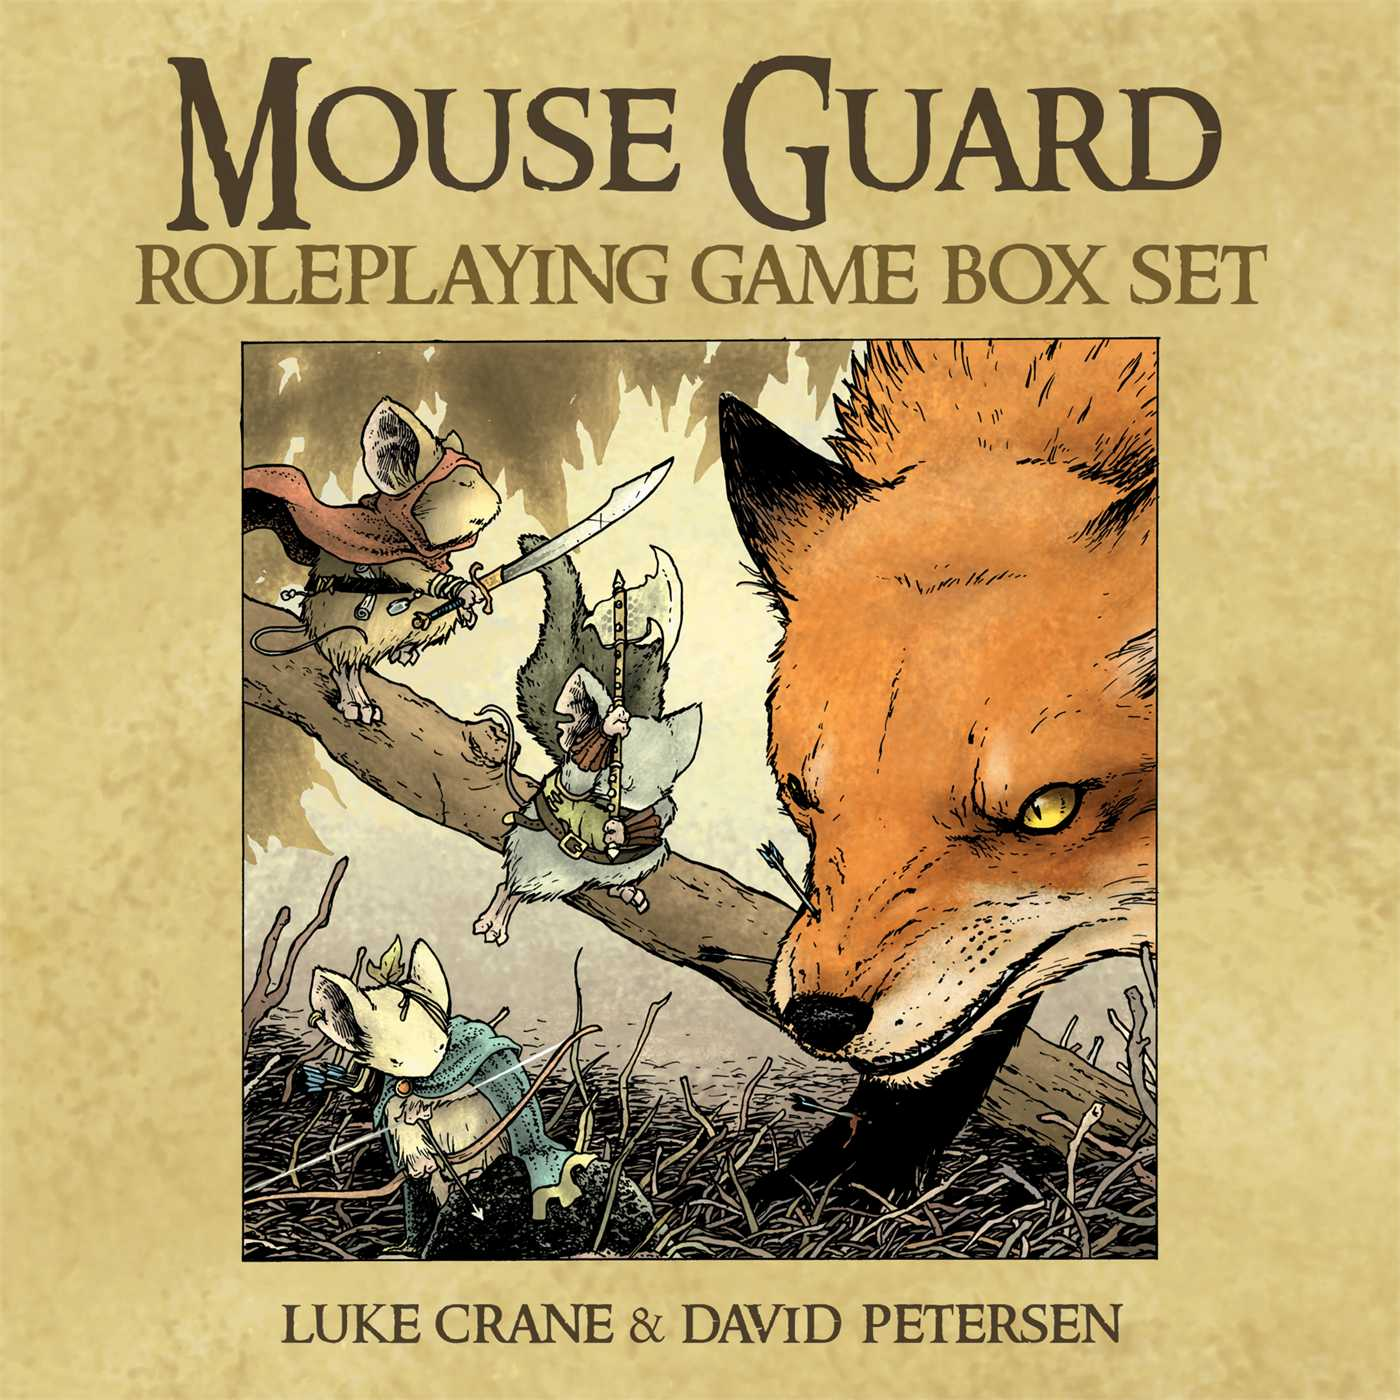 Mouse guard roleplaying game box set 9781936393176 hr